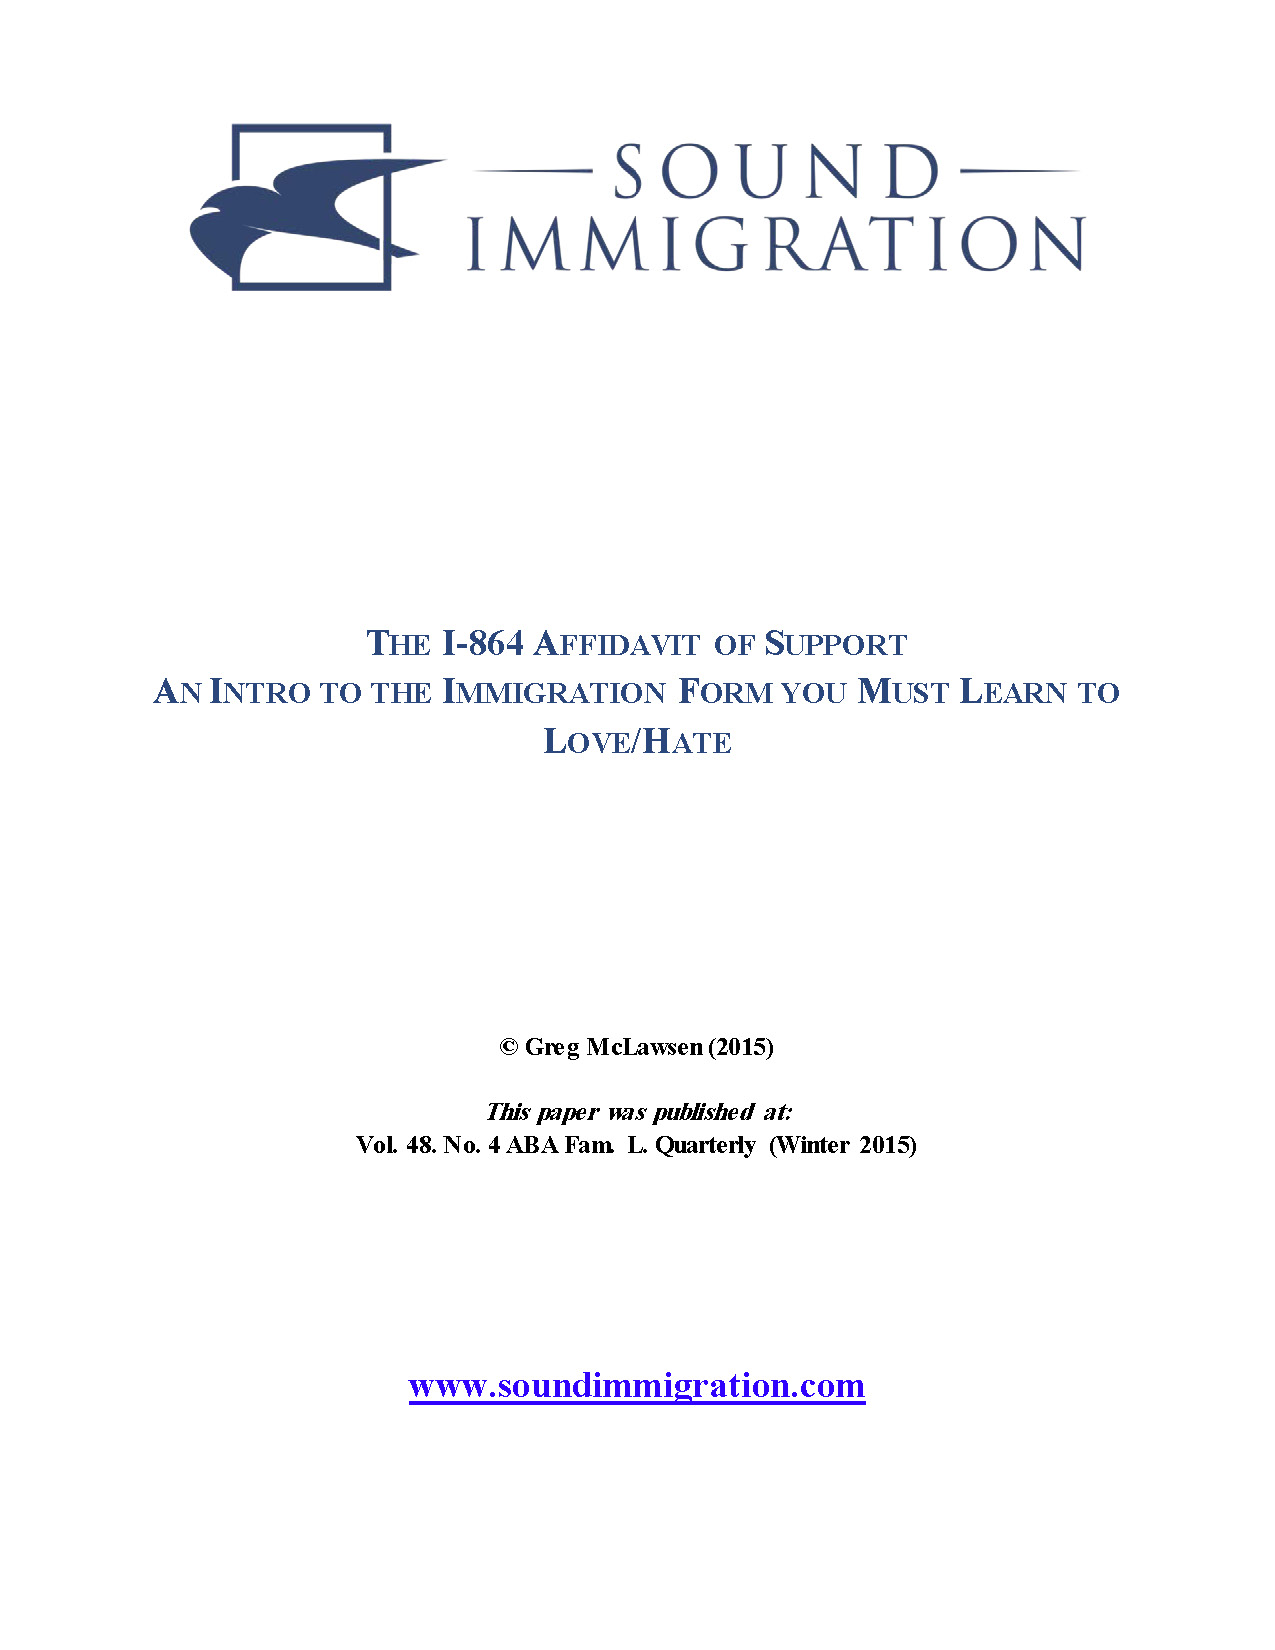 The I-864 Affidavit of Support An Intro to the Immigration Form ...